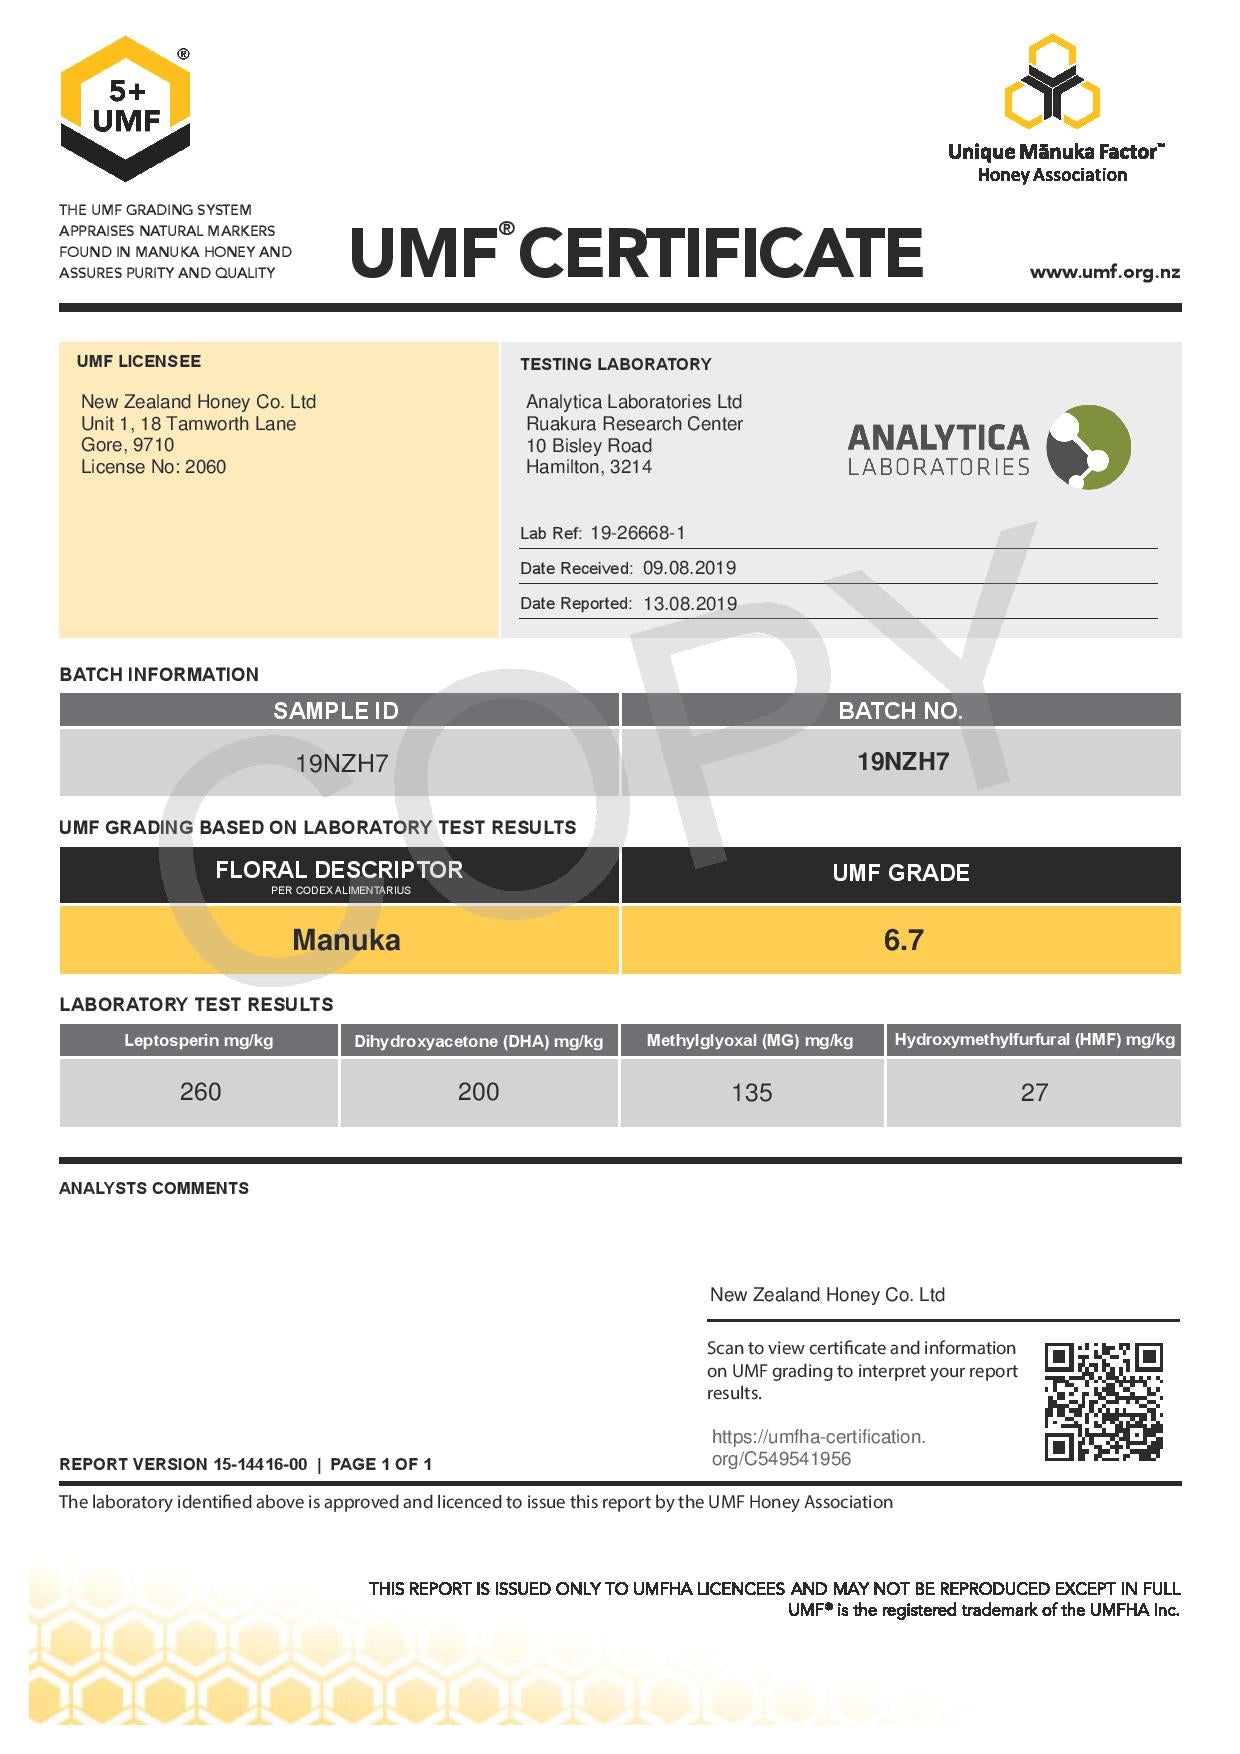 Manuka Honey UMF Certificate for LOT 19NZH7 from New Zealand Honey Co.